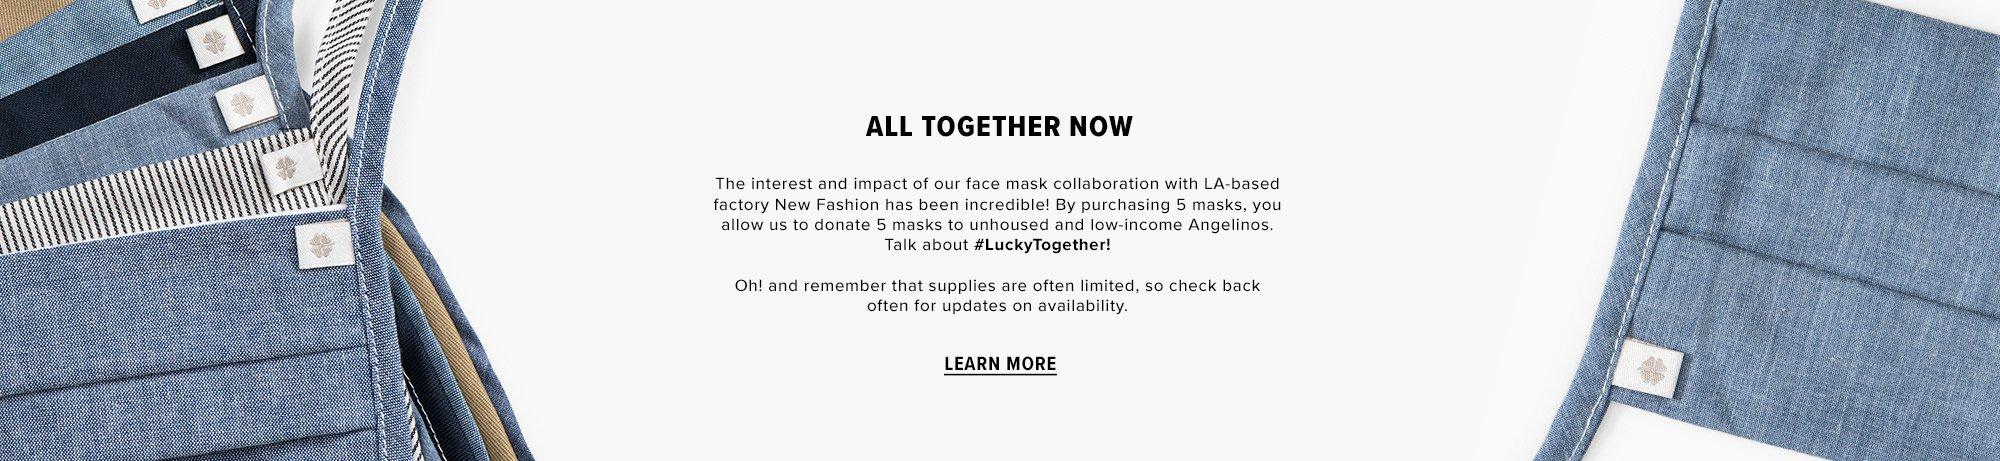 Give 5 + Give 5 For $25: Every 5-pack of face masks sold, we'll dontate 5 to our unhouse neighbors and low-income Angelenos